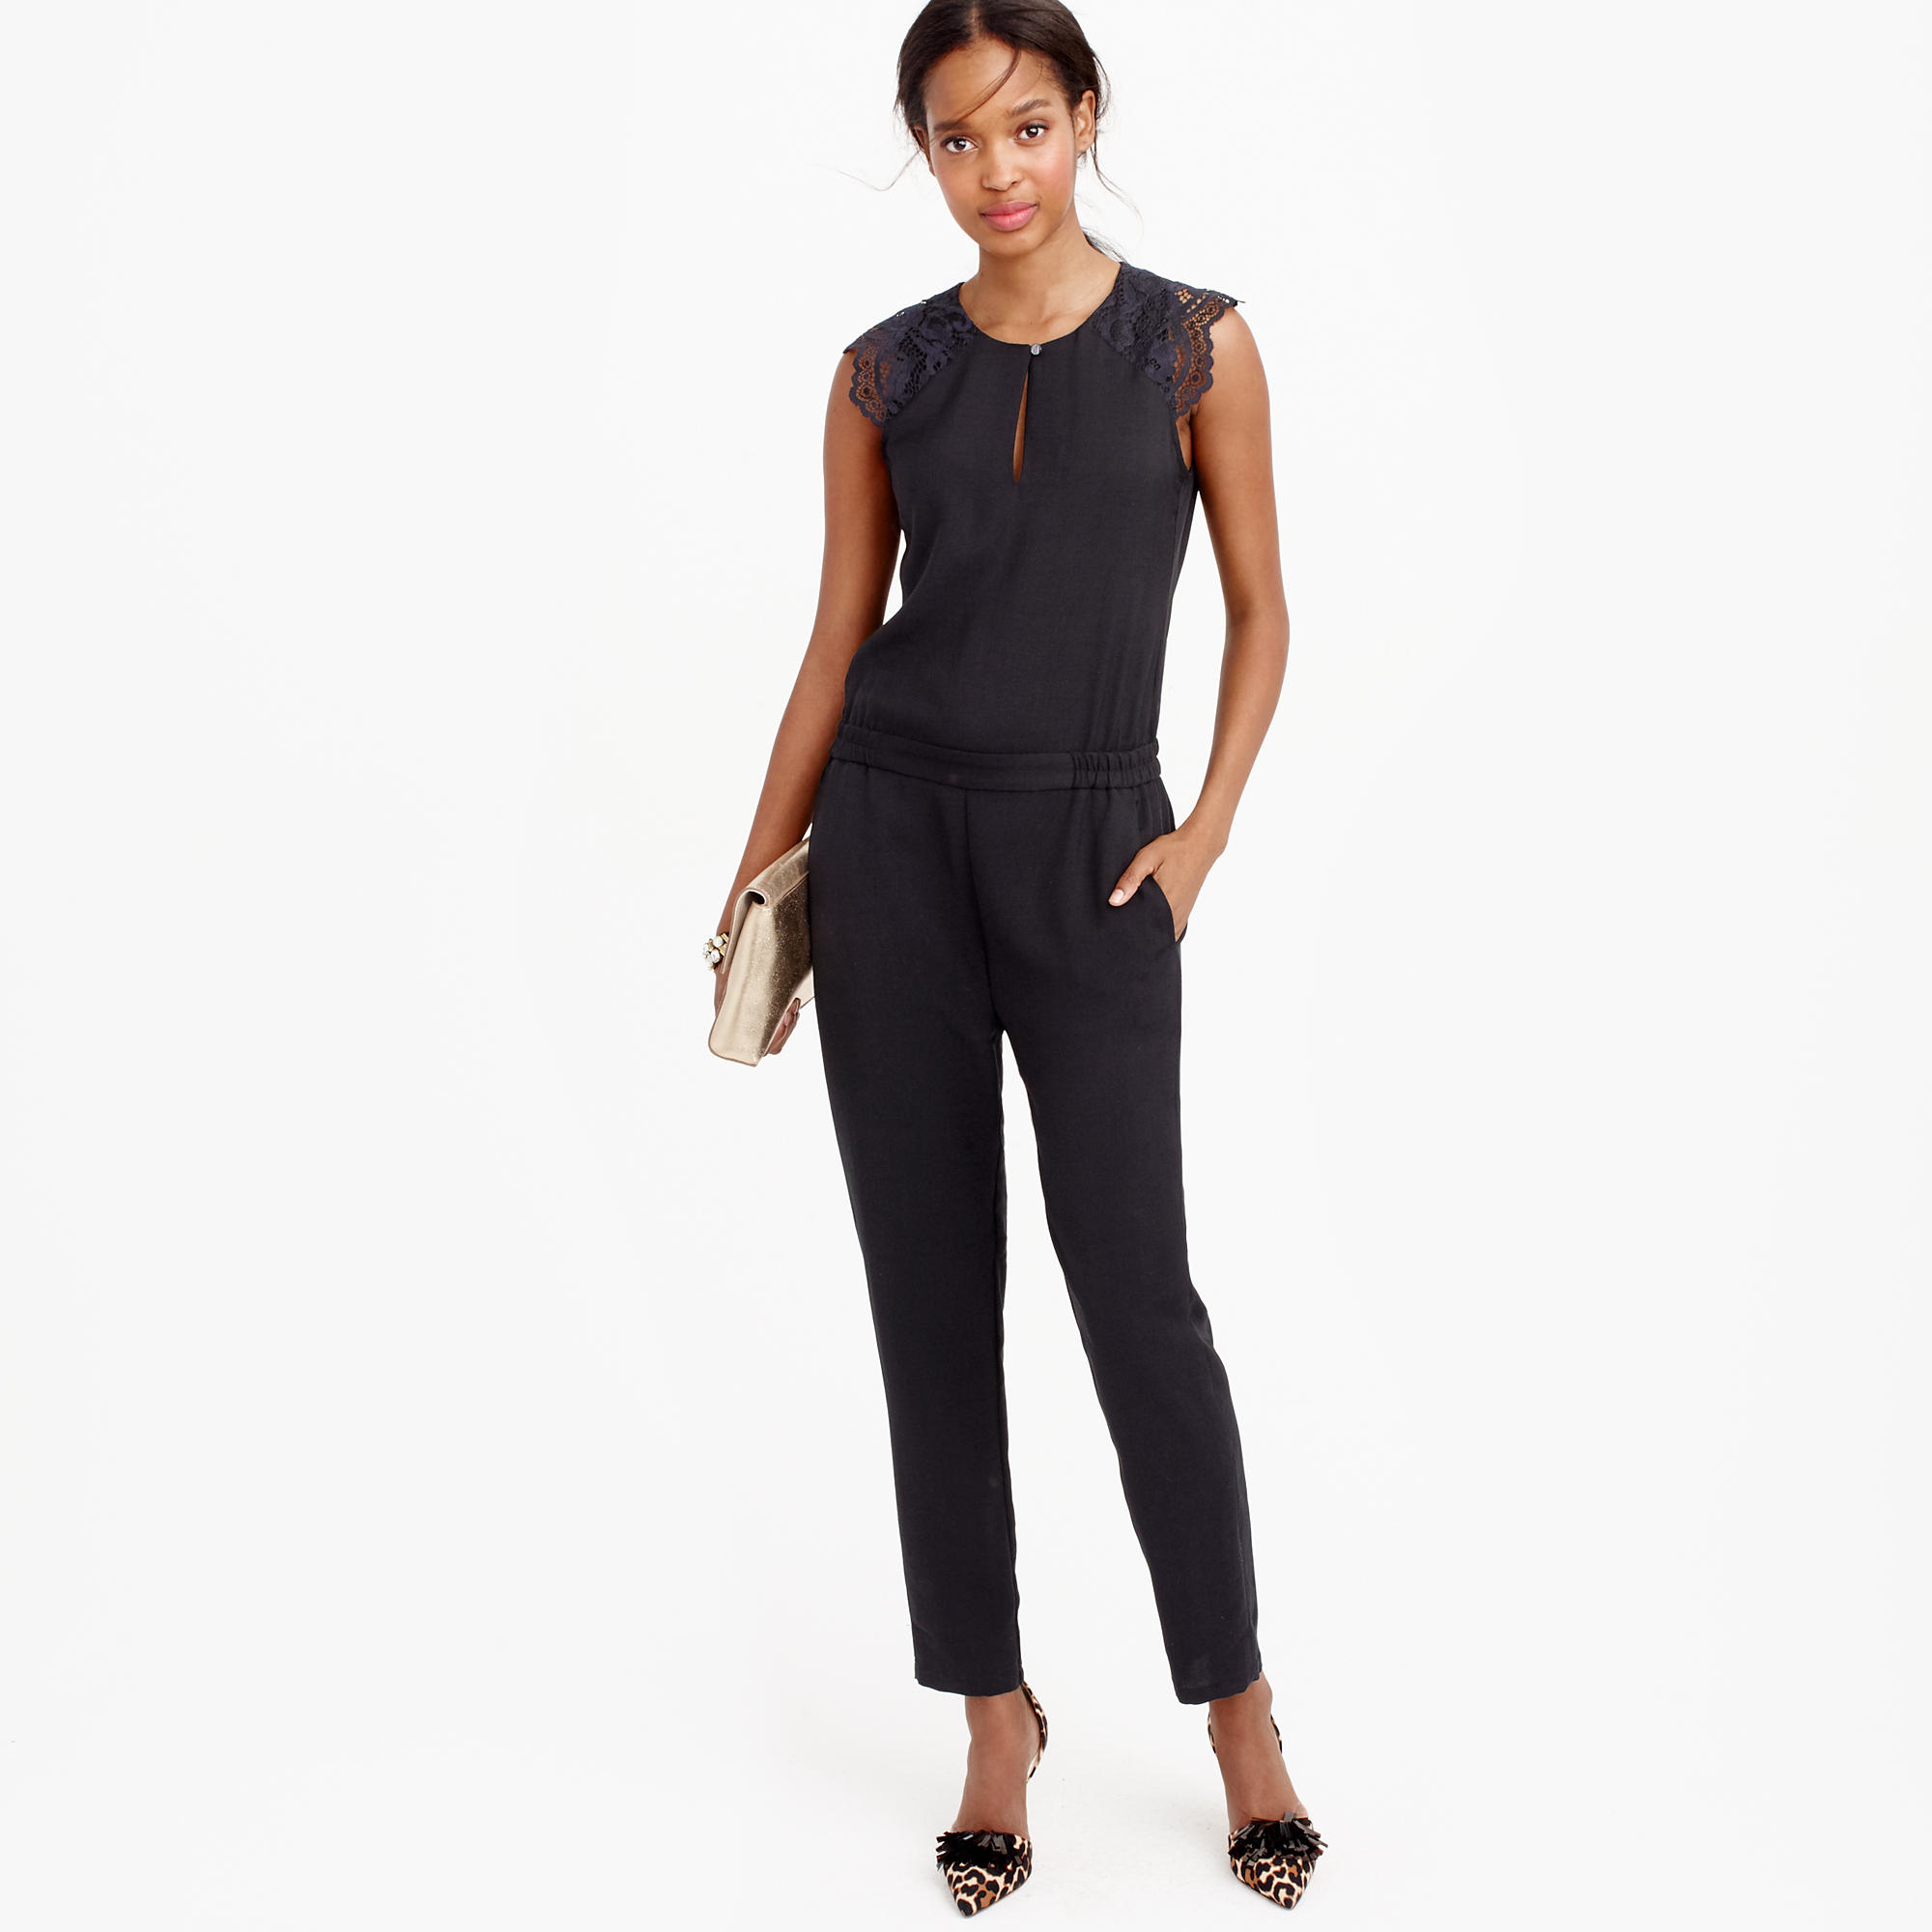 Collection Black Petite Jumpsuit Pictures - Reikian